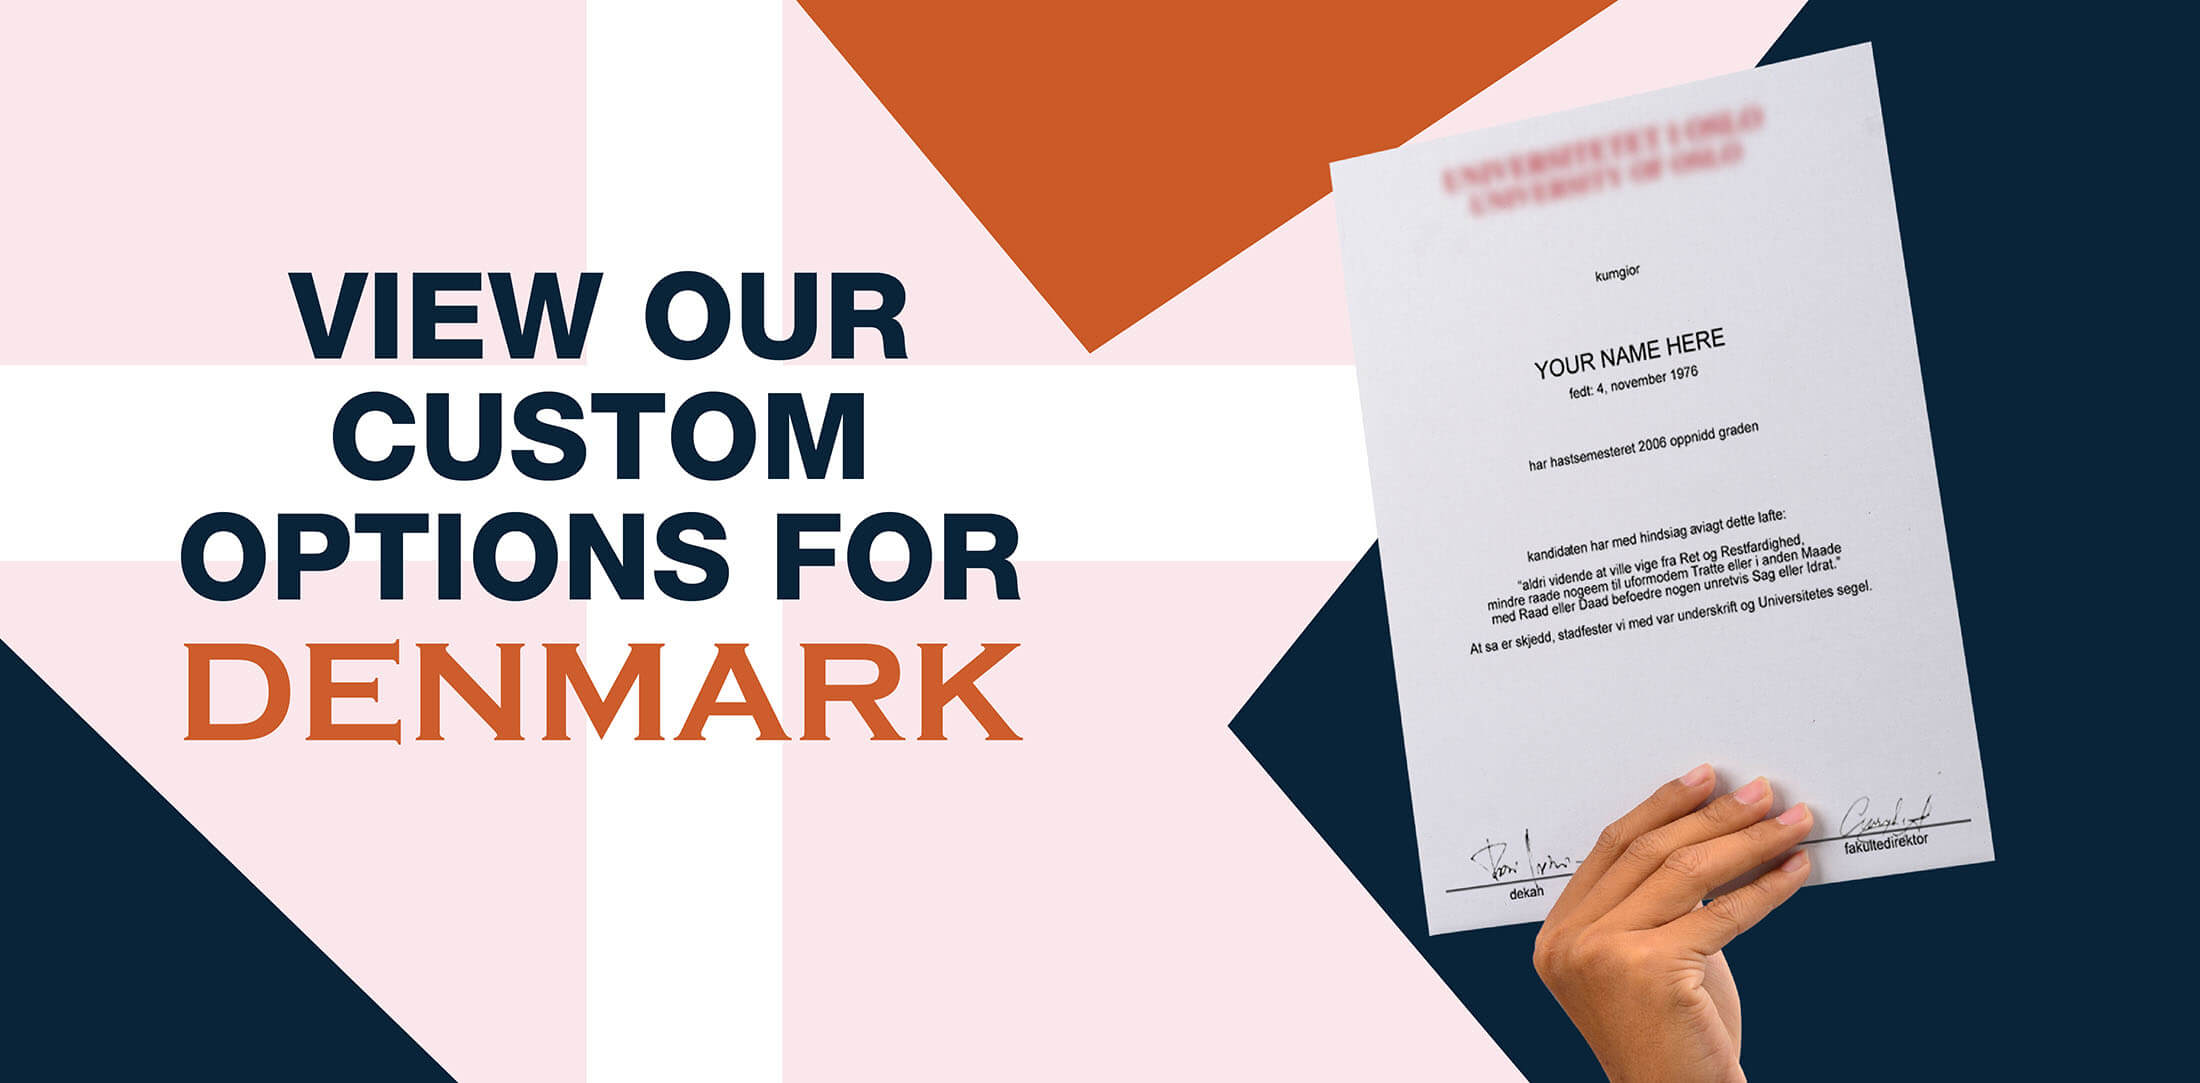 hands holding high quality realistic fake Denmark degrees from Diploma Company UK!